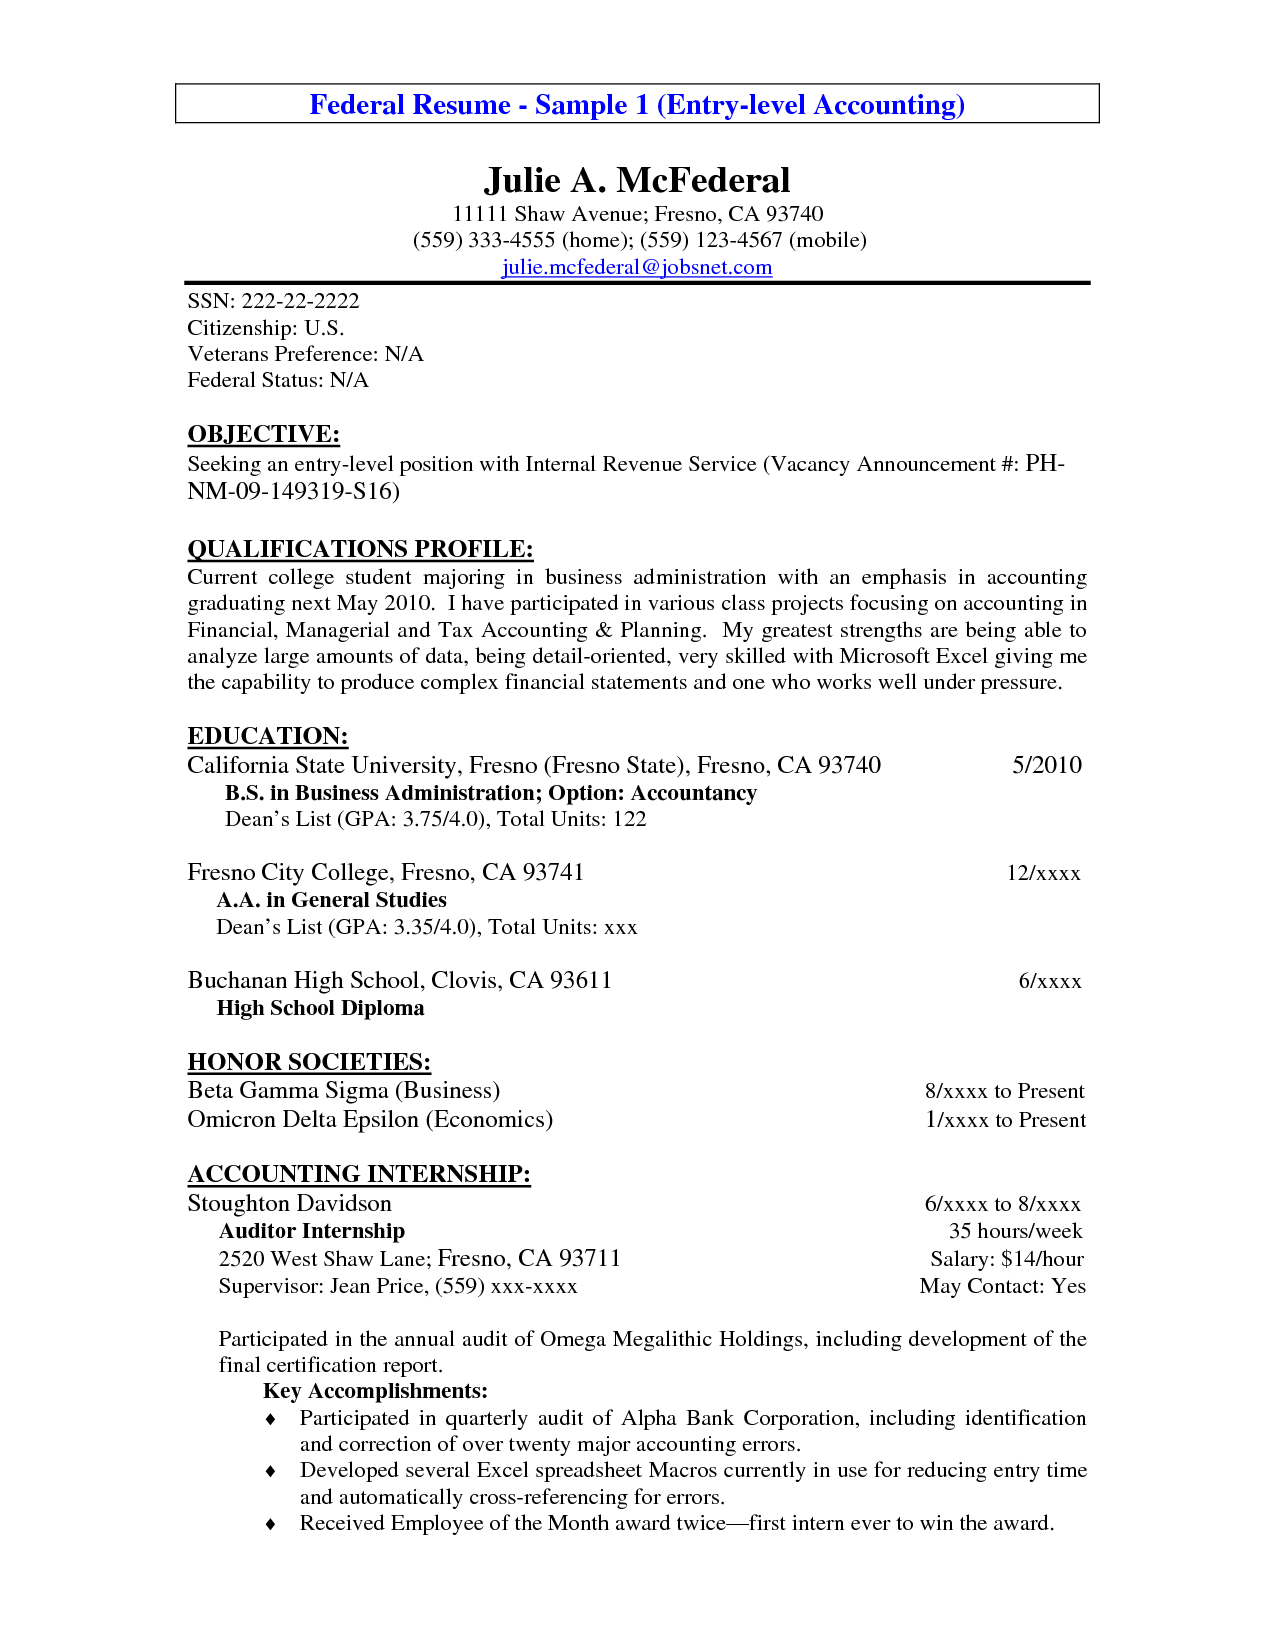 Accounting Internship Resume Objective Adorable Ann Debusschere A_Debusschere On Pinterest